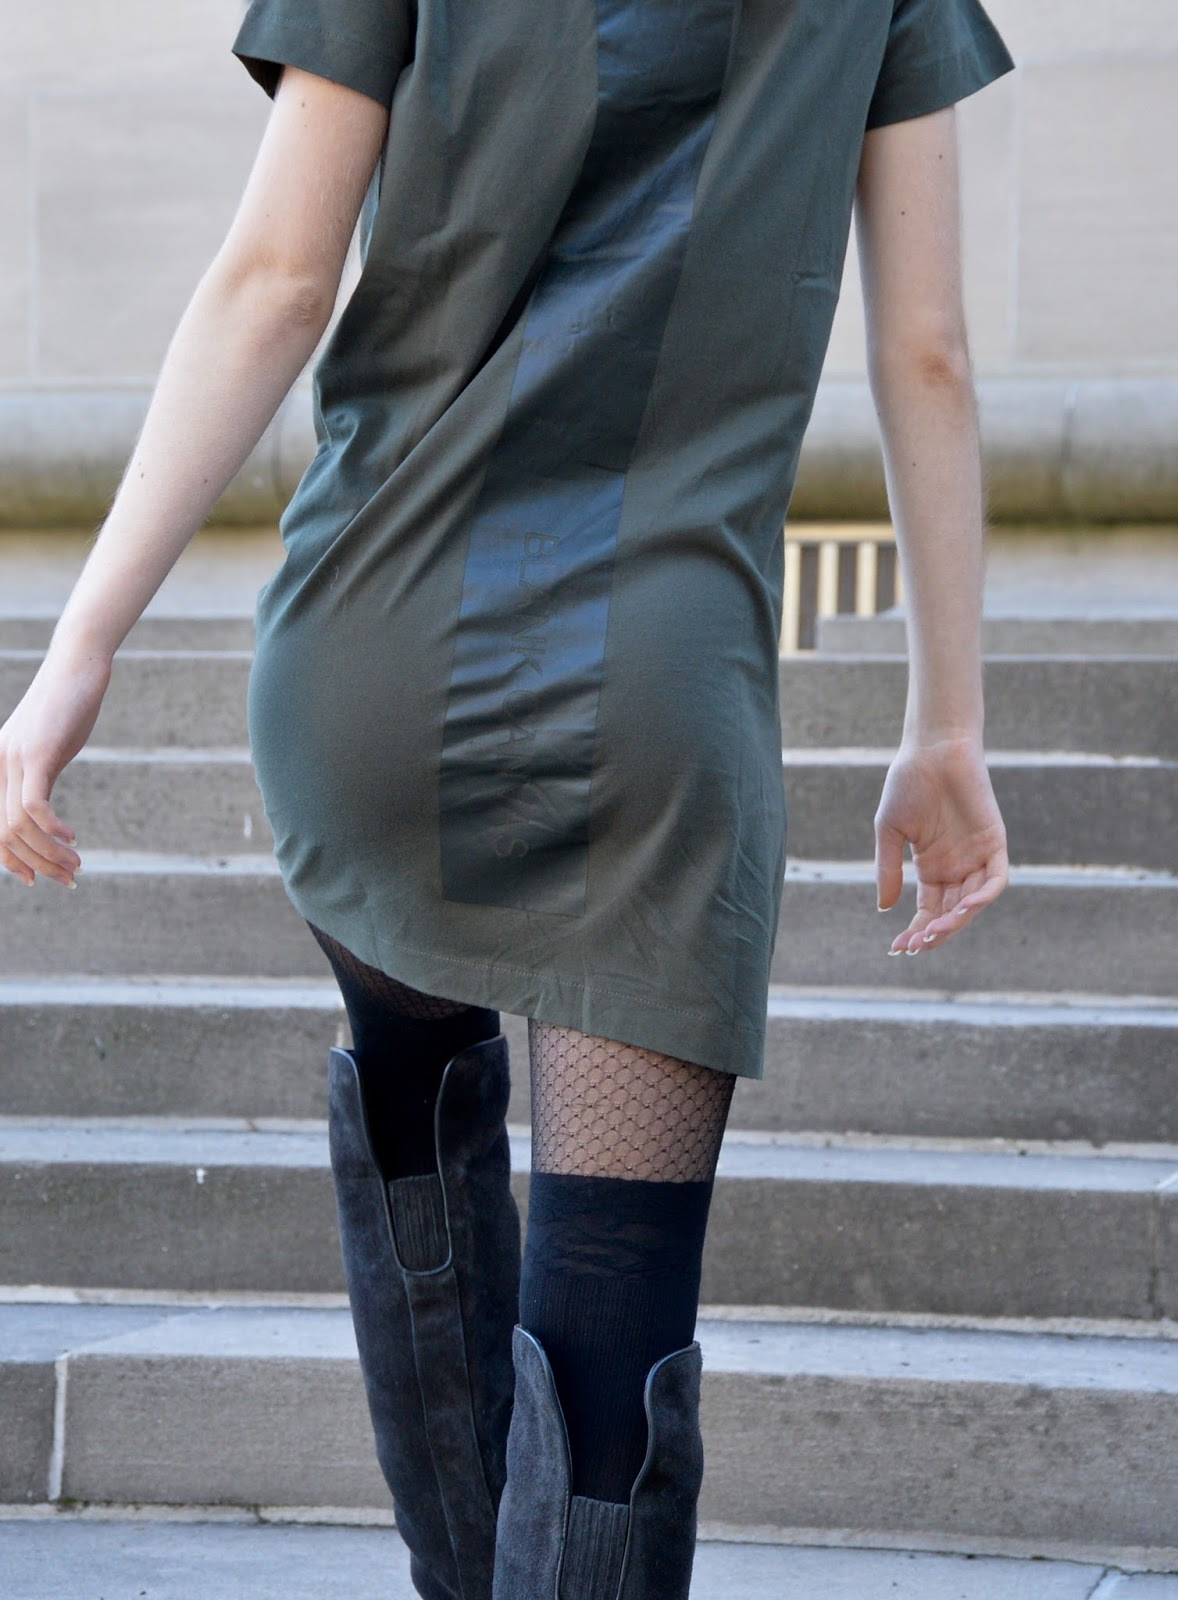 Walking up the stairs in a dress with tights and over the knee boots